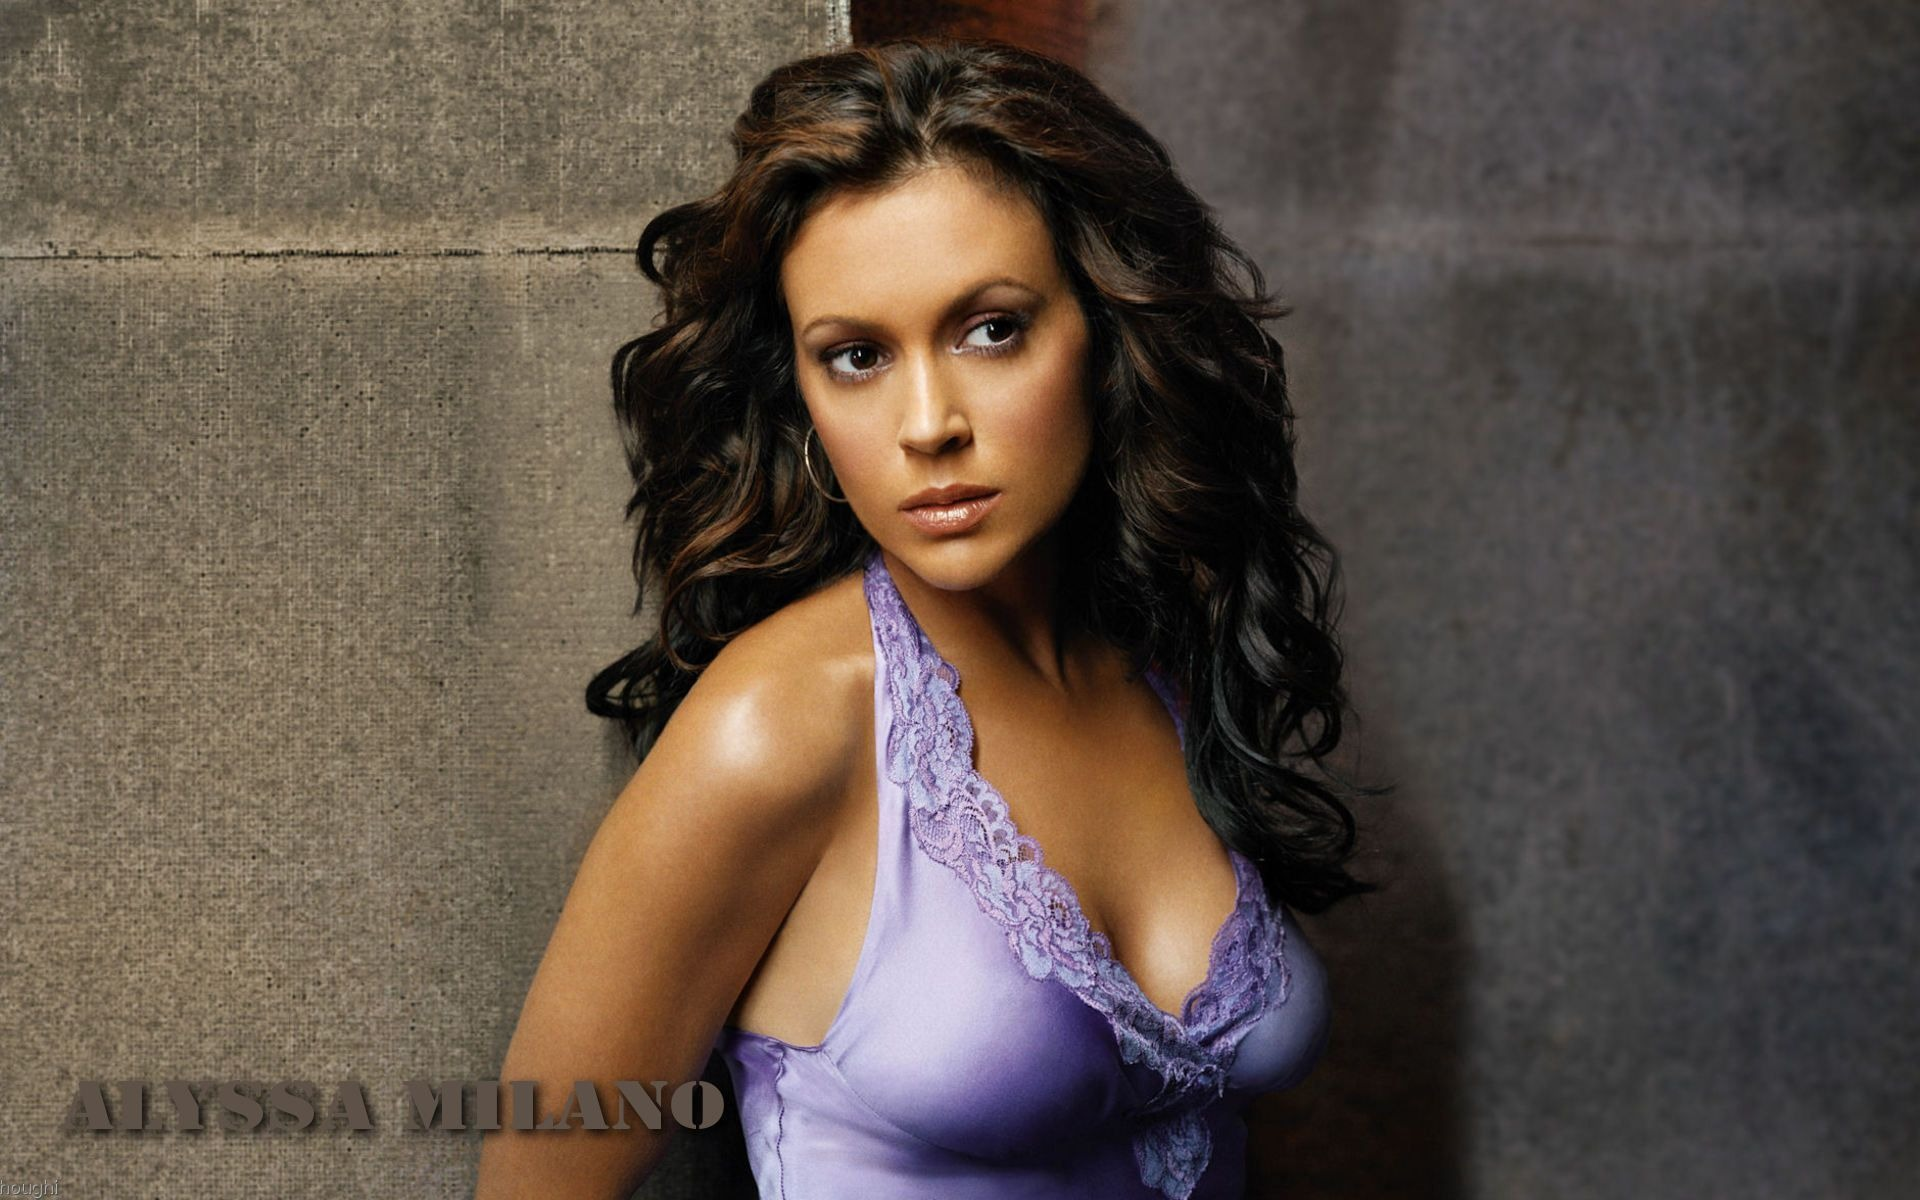 Alyssa Milano #030 - 1920x1200 Wallpapers Pictures Photos Images